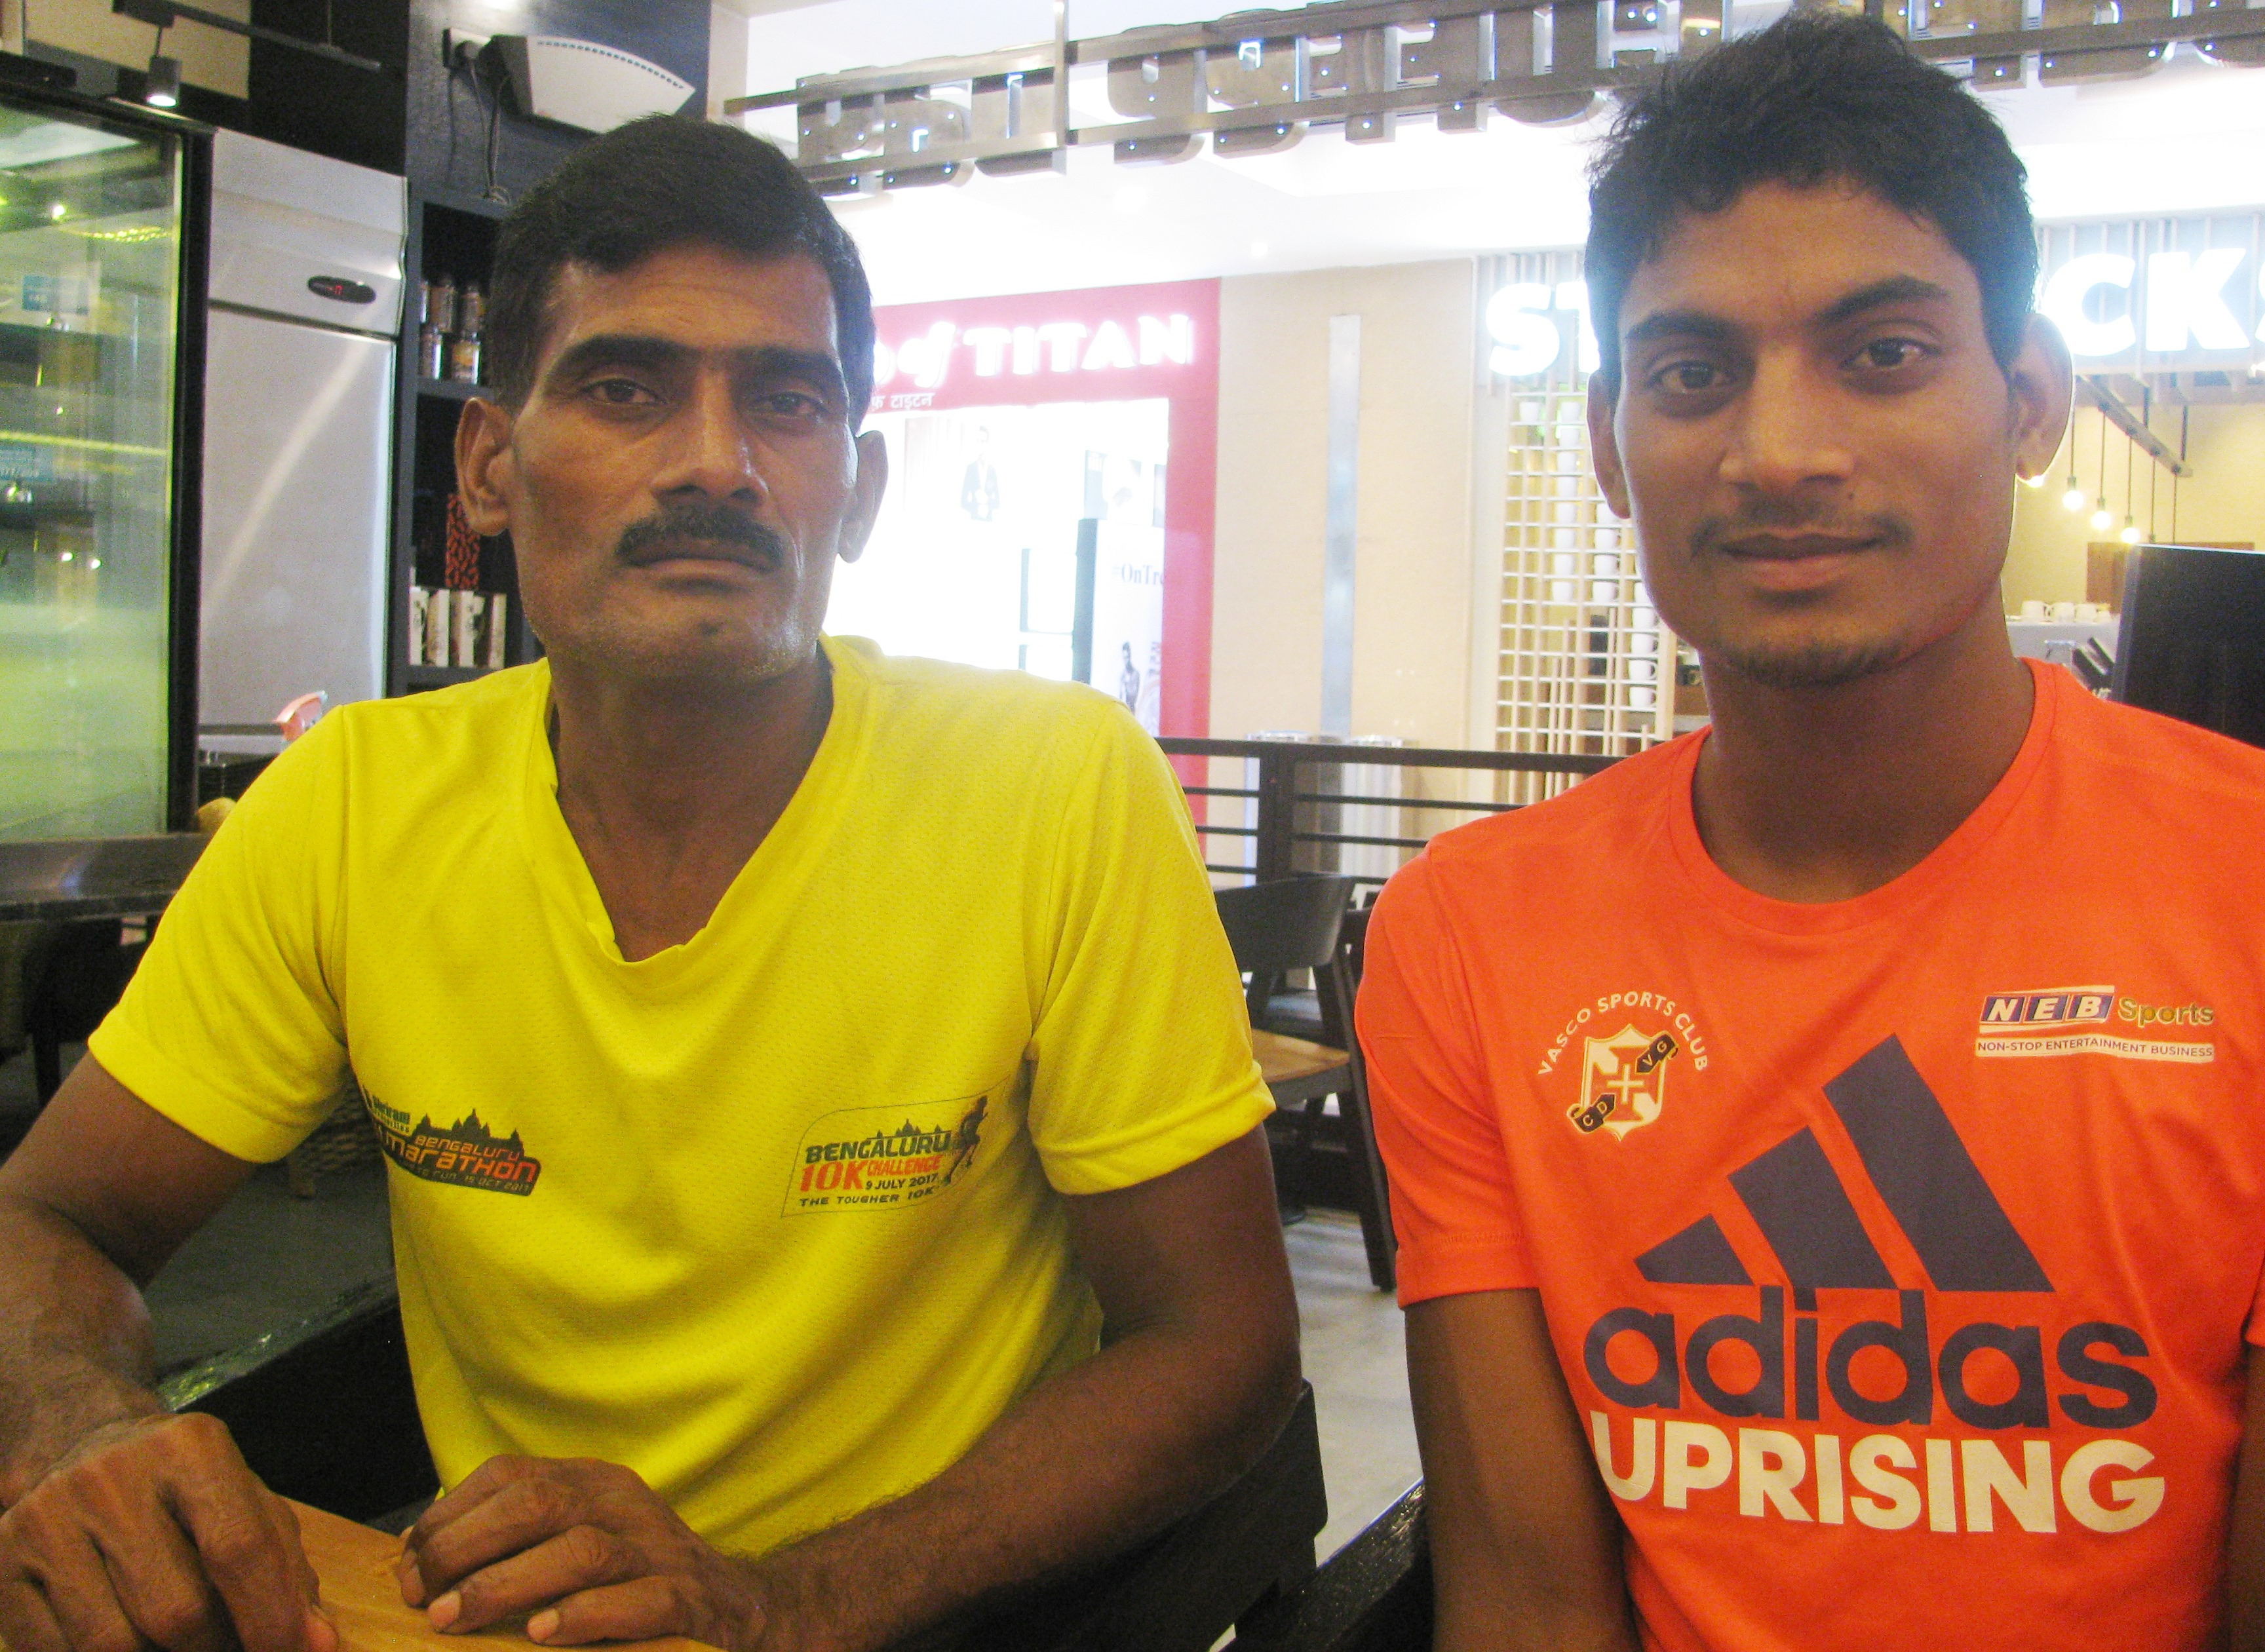 ROHIT YADAV: TRAINING ABROAD ON THE CARDS – Outrigger